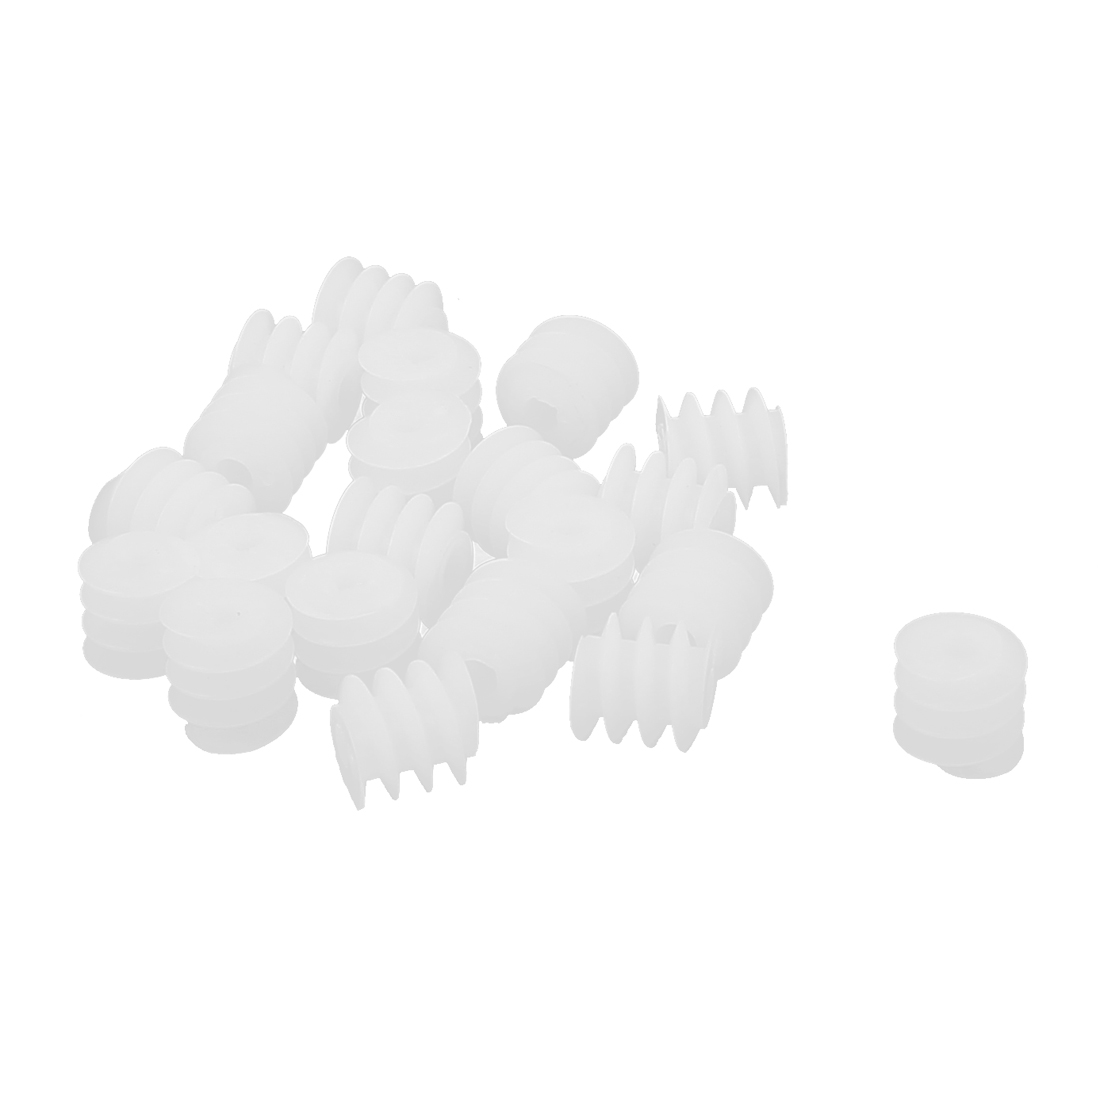 20 Pcs 2mm Hole 6mmx6mm Plastic Worm Gear for DIY Toy Motor Reduction Box